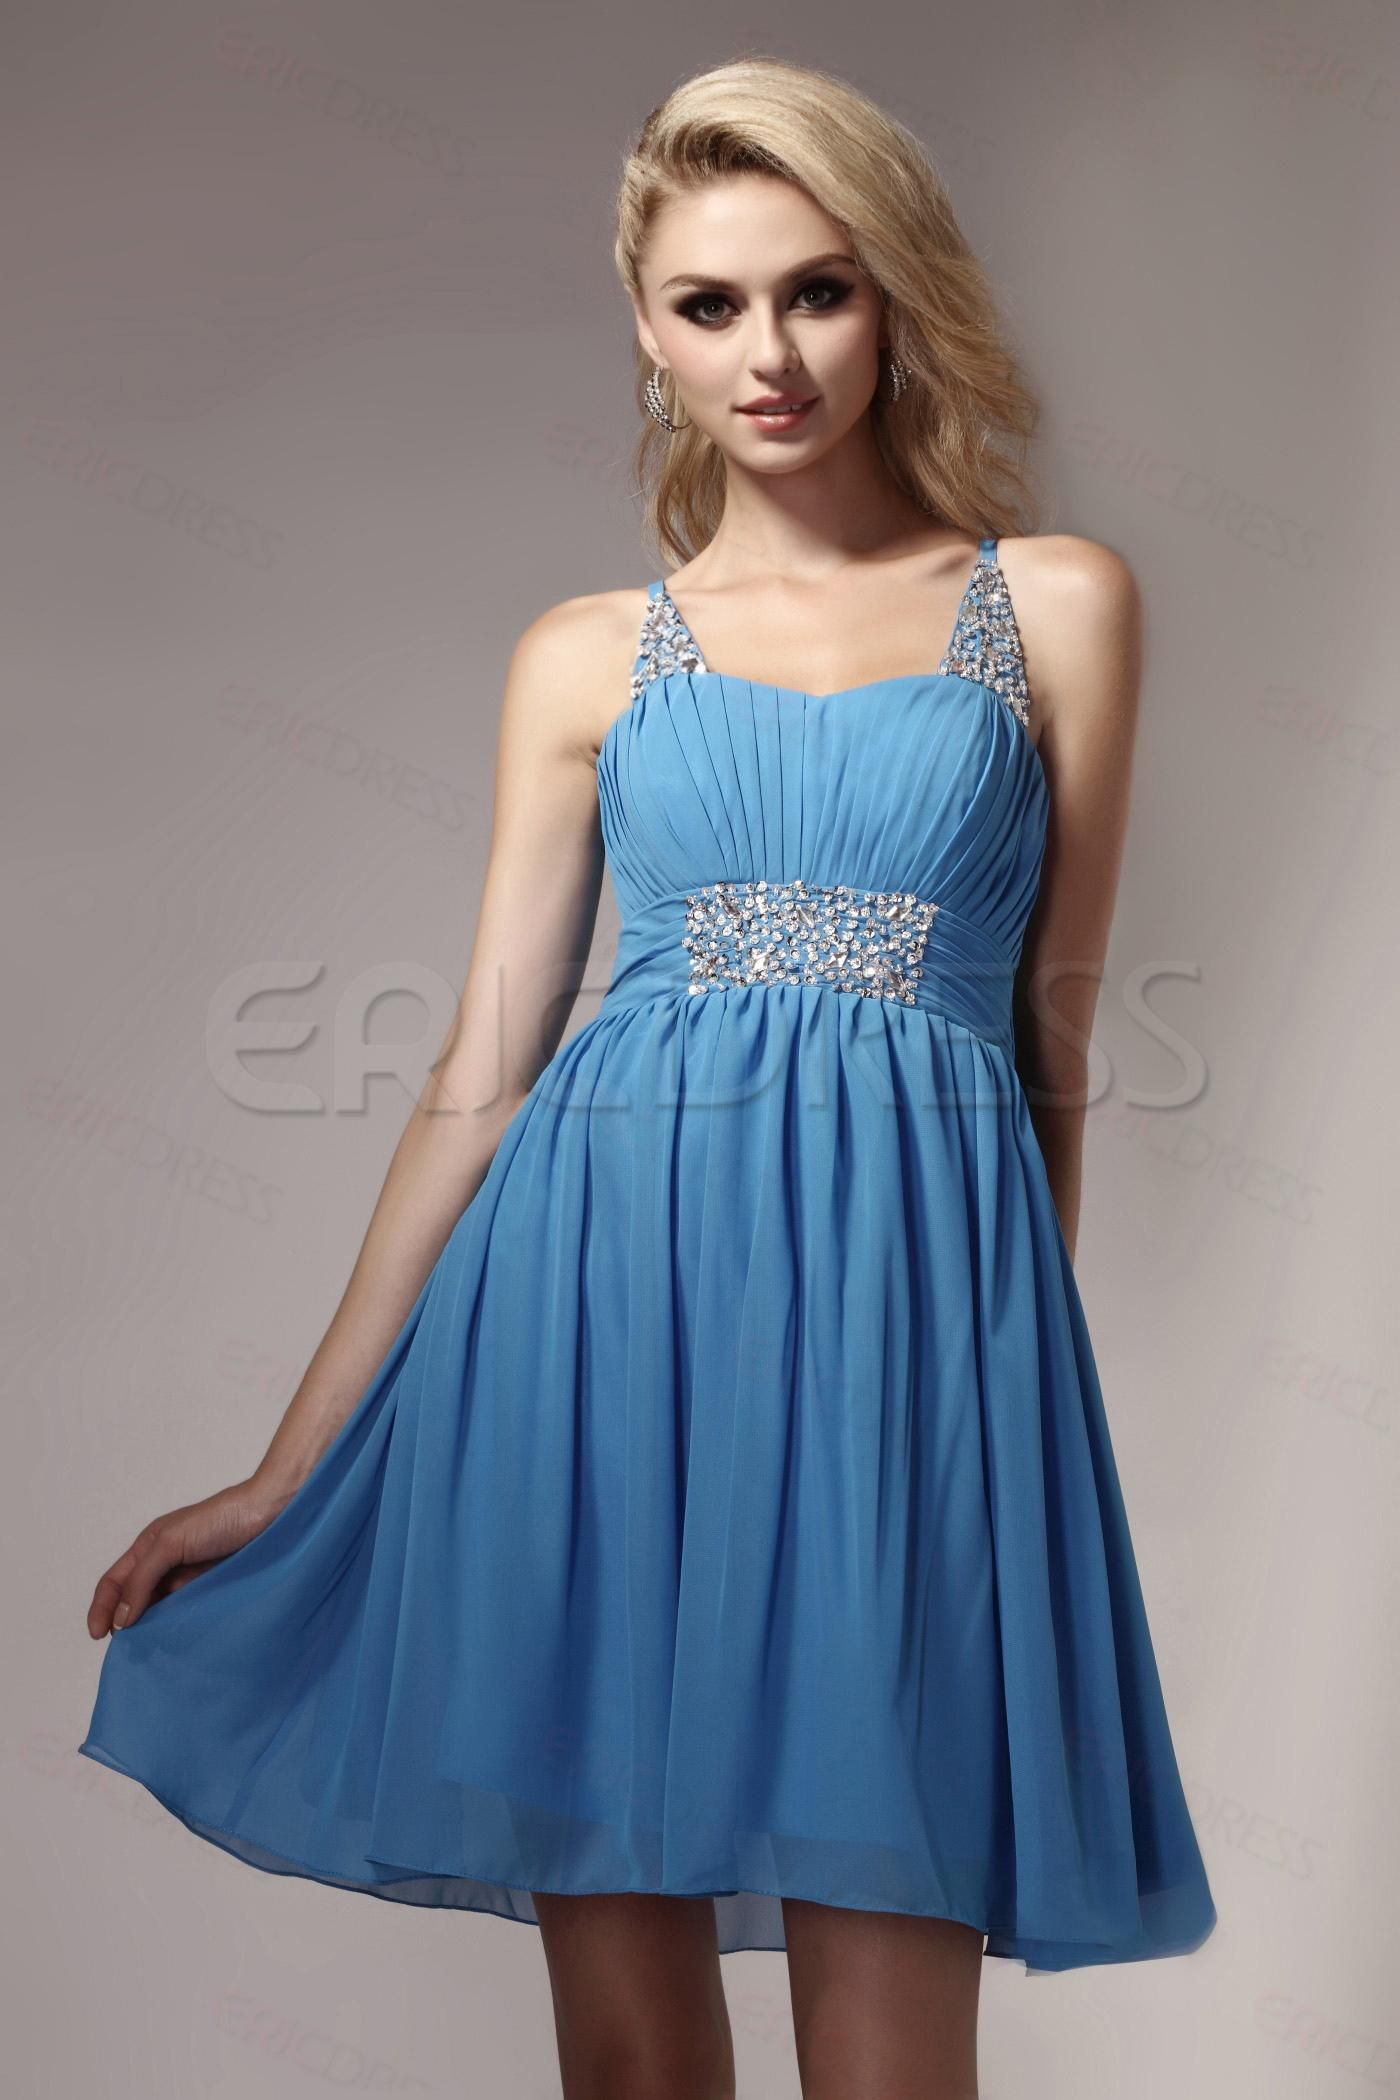 Fancy aline straps minishort dashaus cocktail dress junior prom